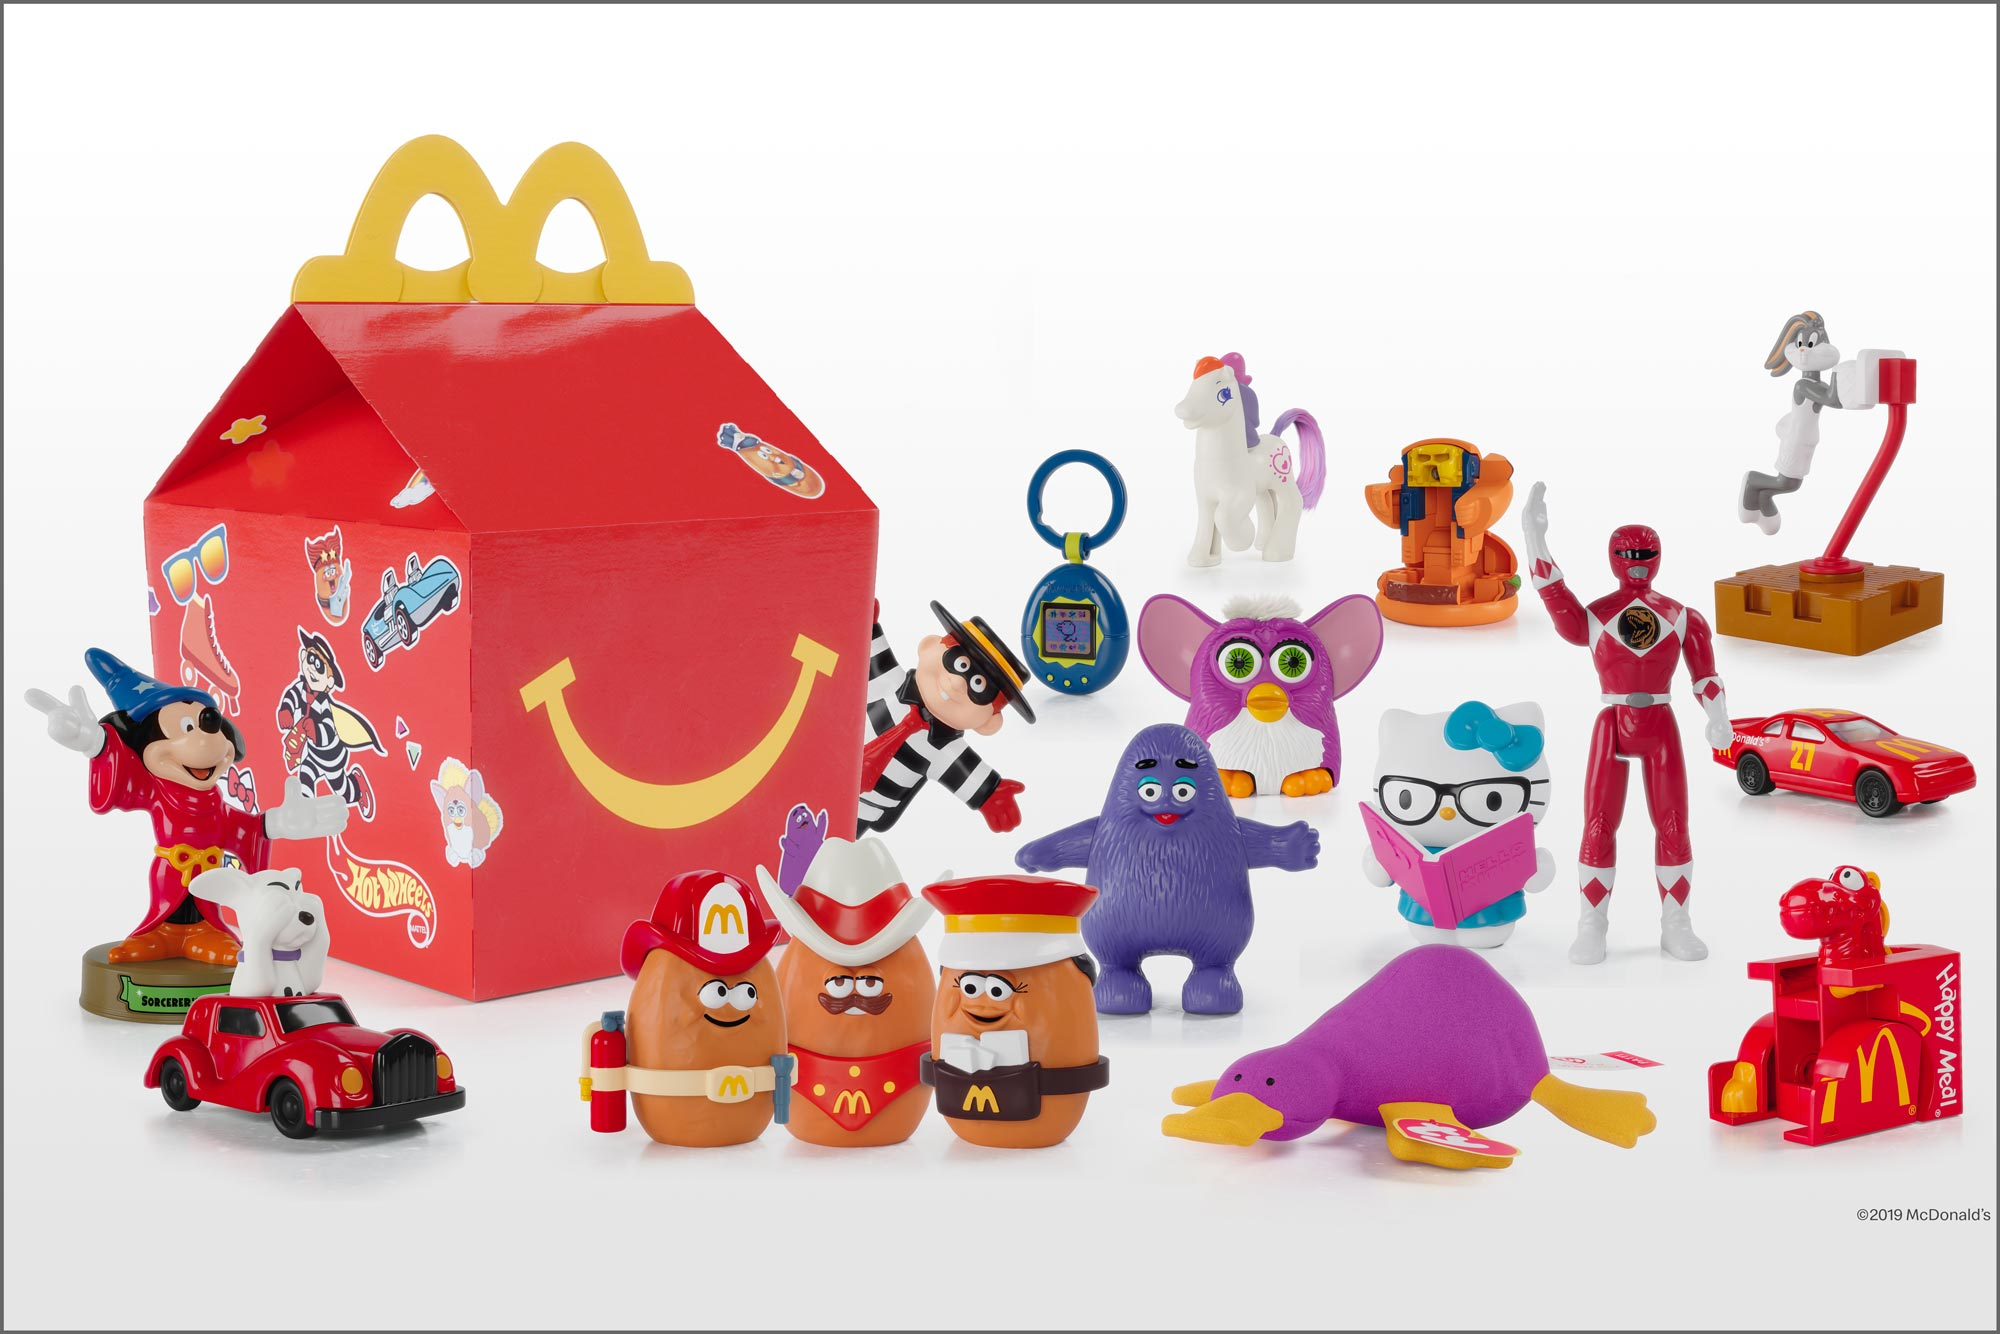 McDonald's brings back retro Happy Meal toys in a nostalgic play to boost restaurant visits